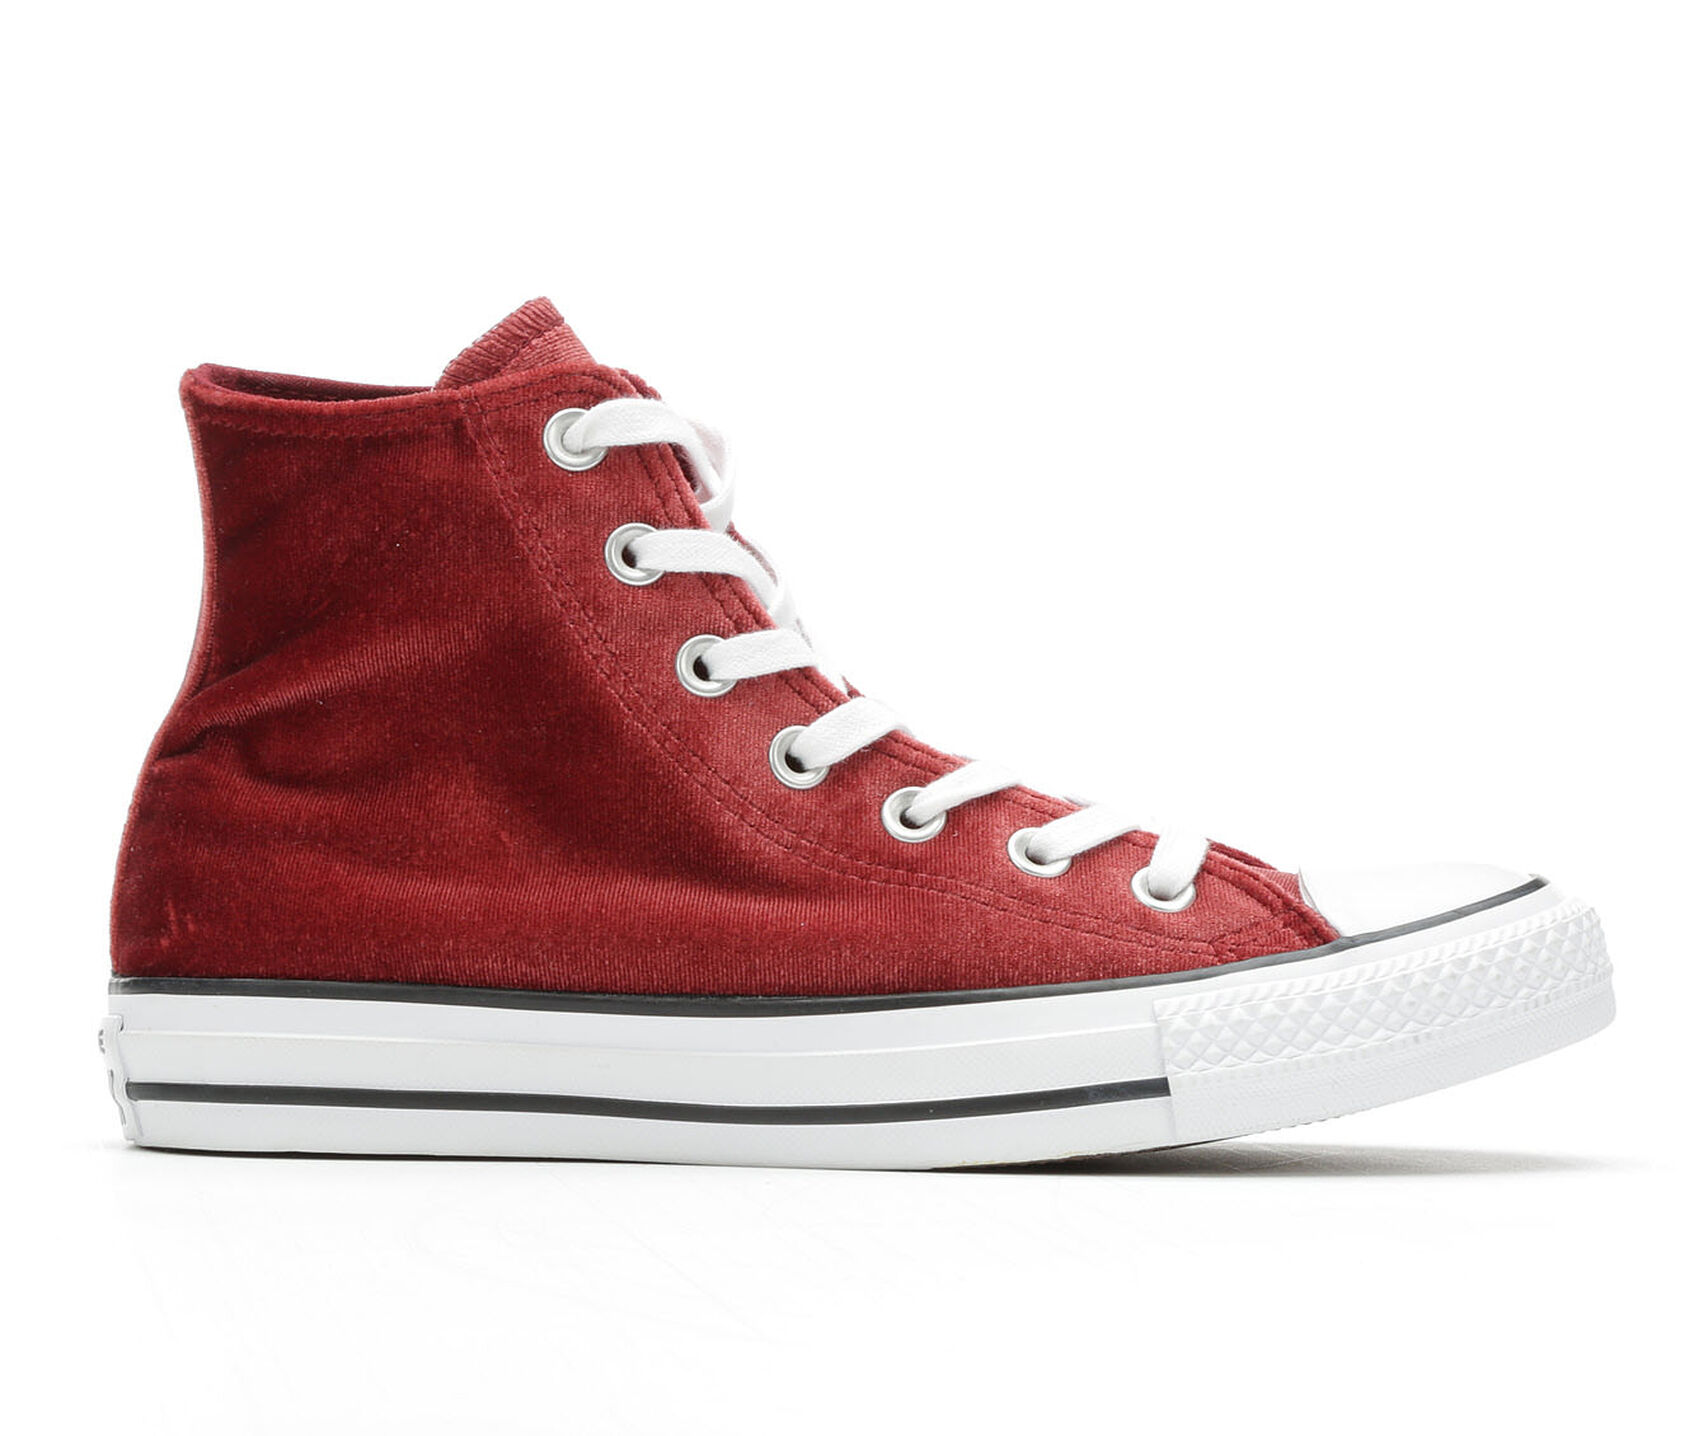 Converse High Tops Shoe Carnival